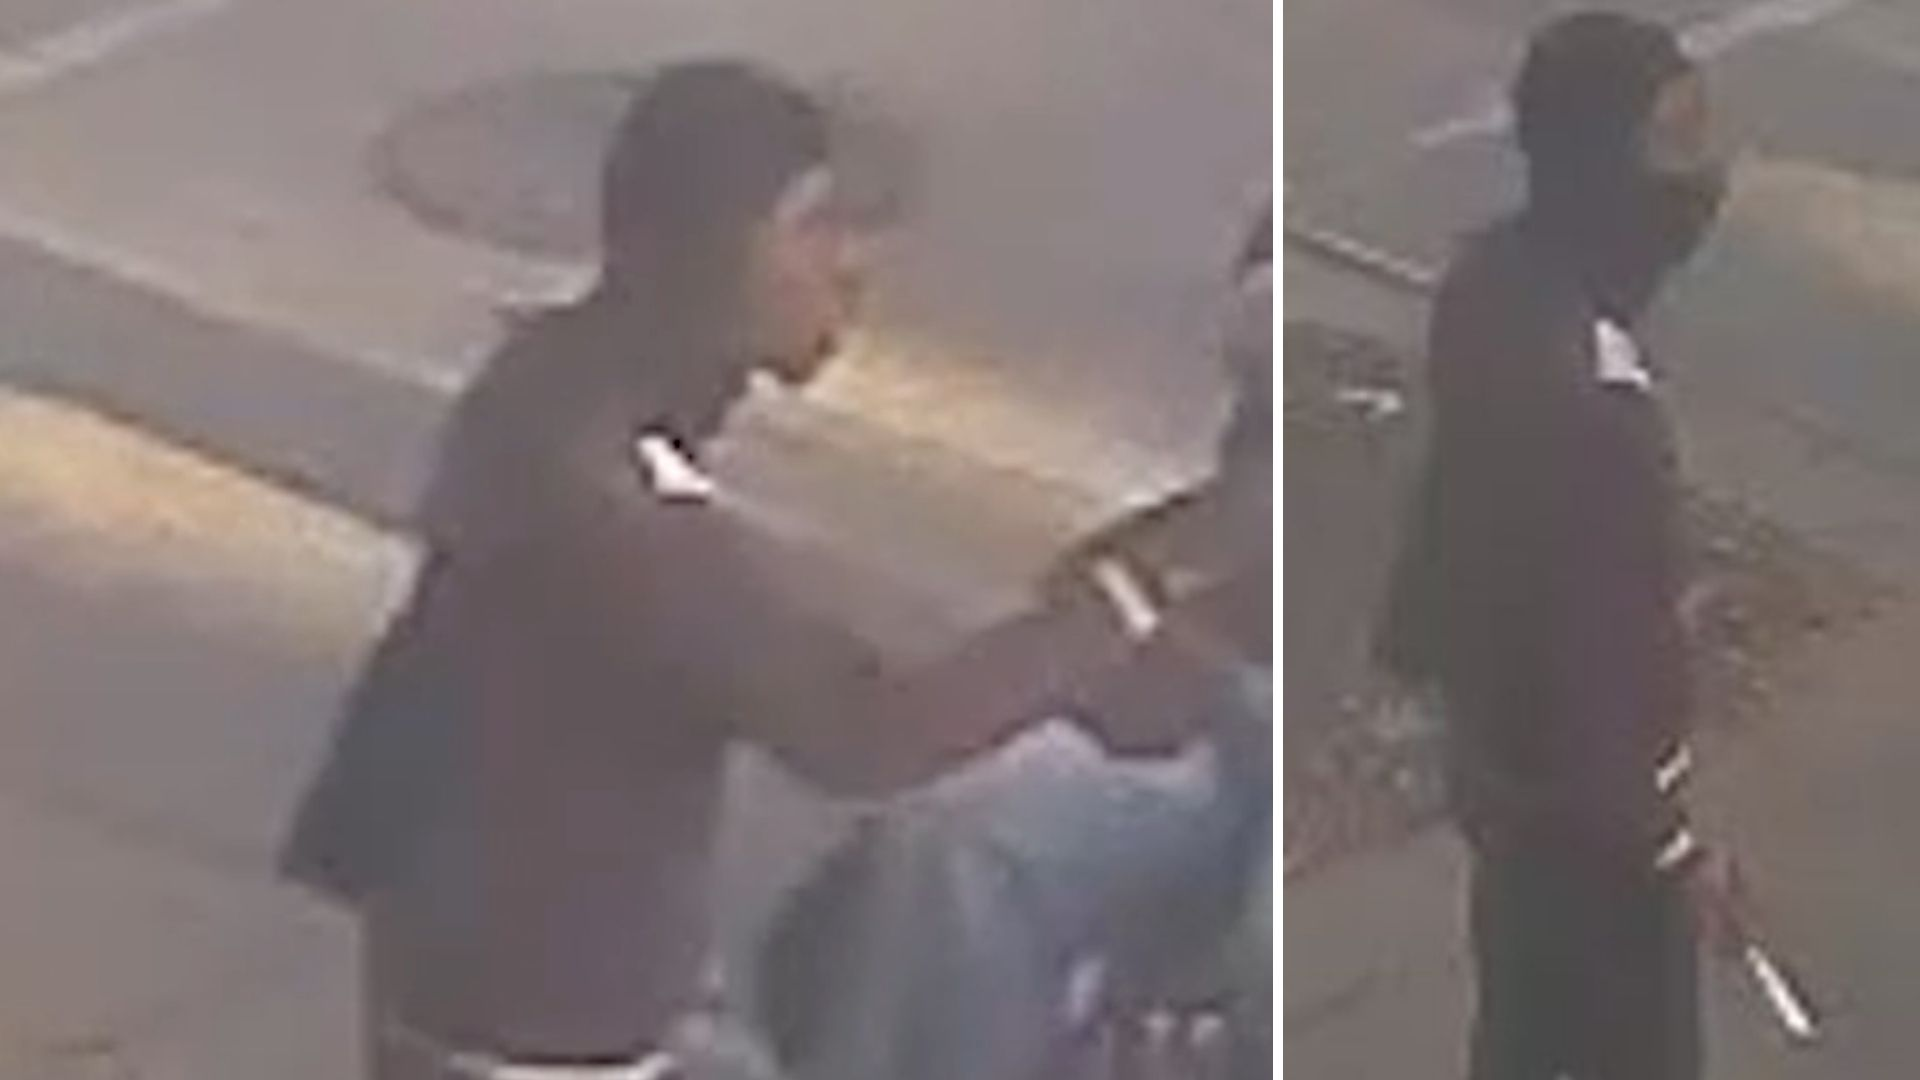 Woman throws boiling water at man, stabs him in Brooklyn: NYPD